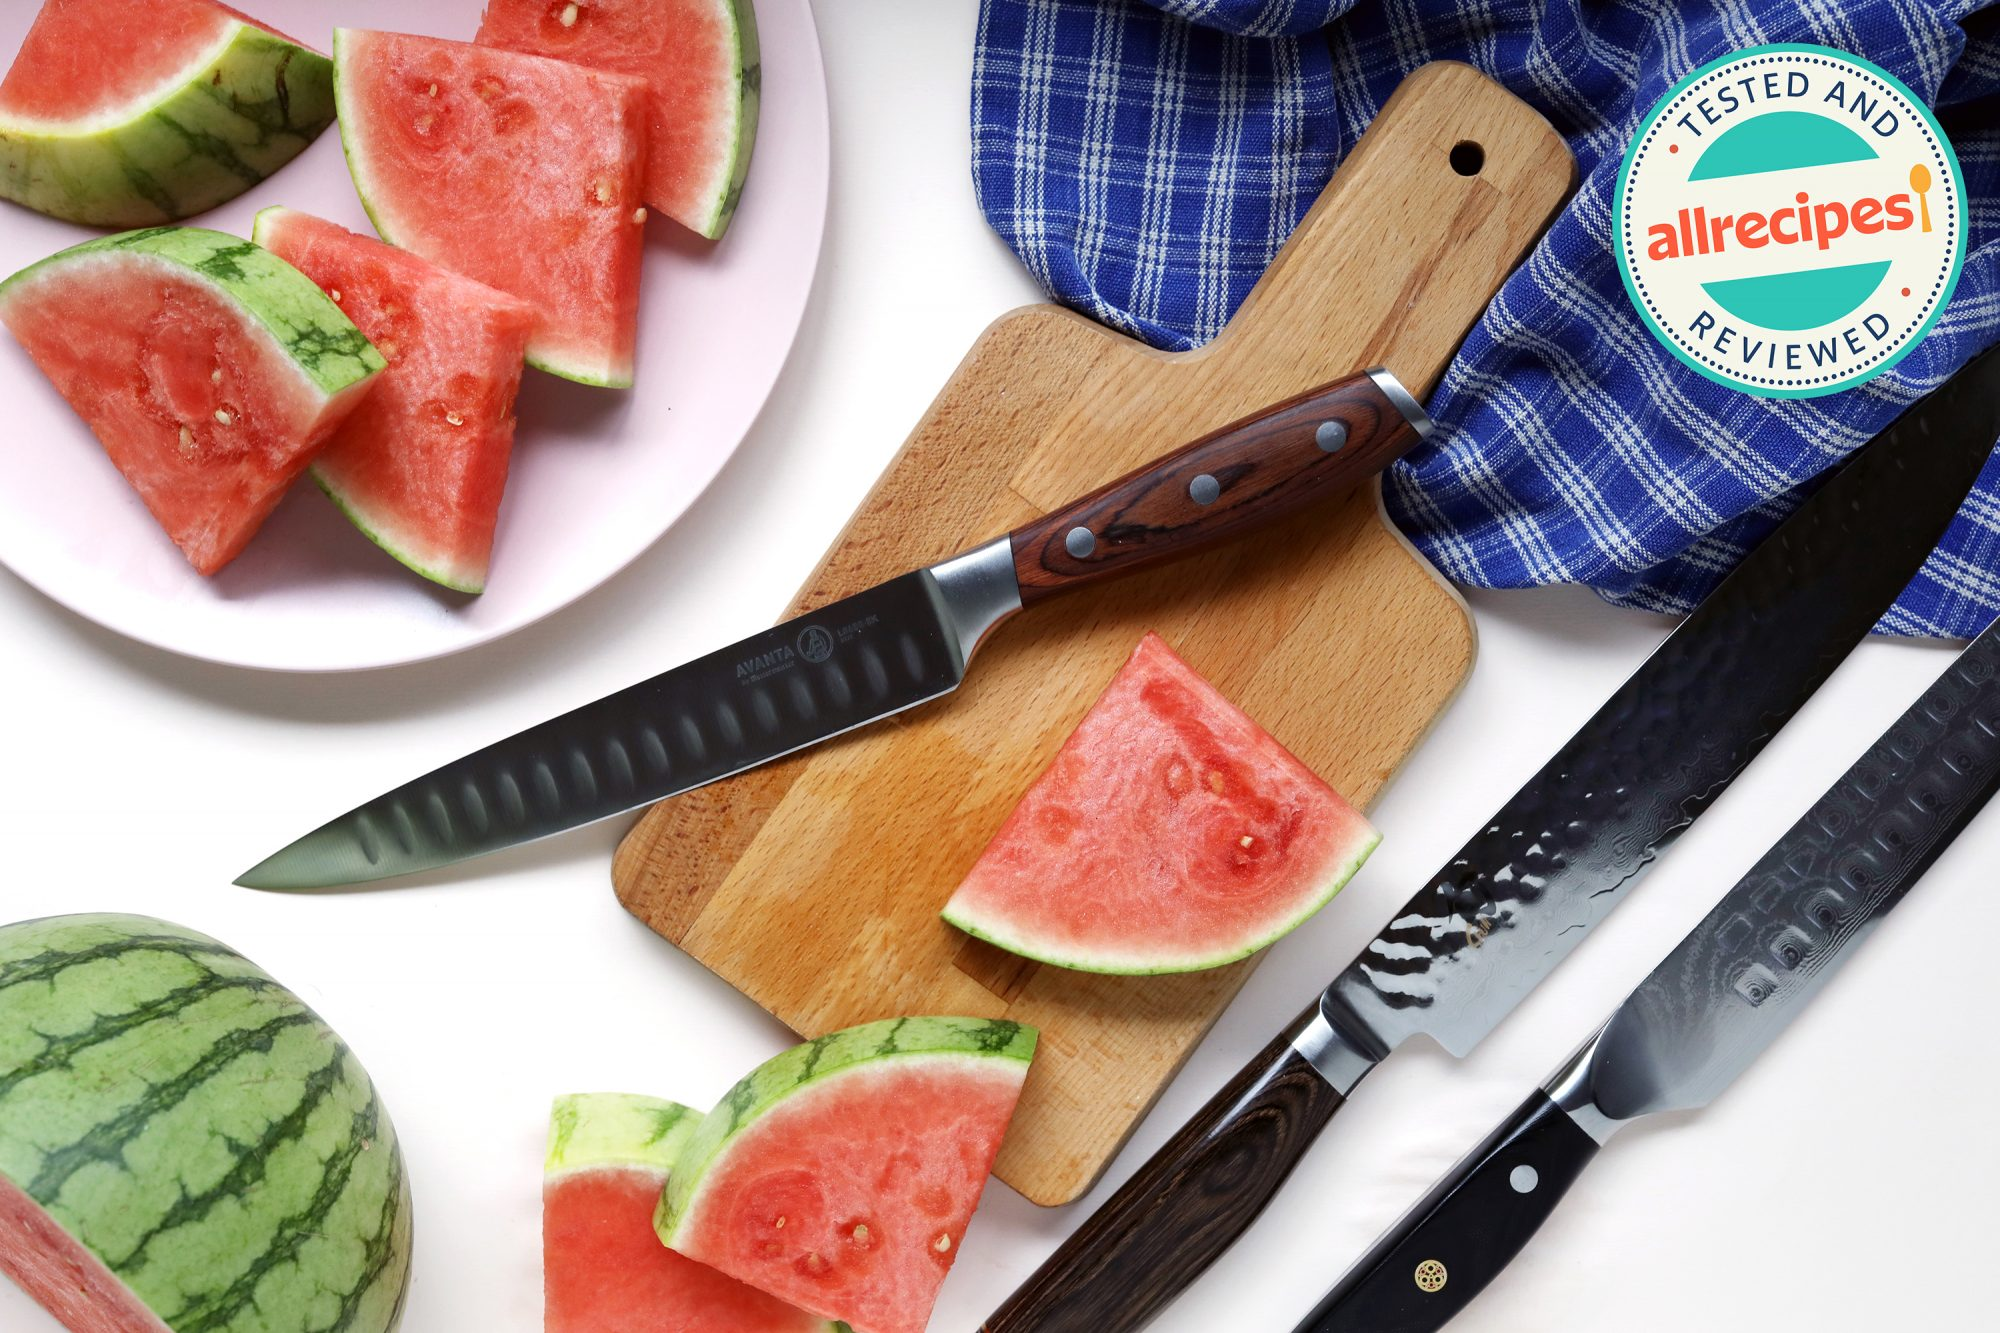 carving knives with cutting board and watermelon wedges